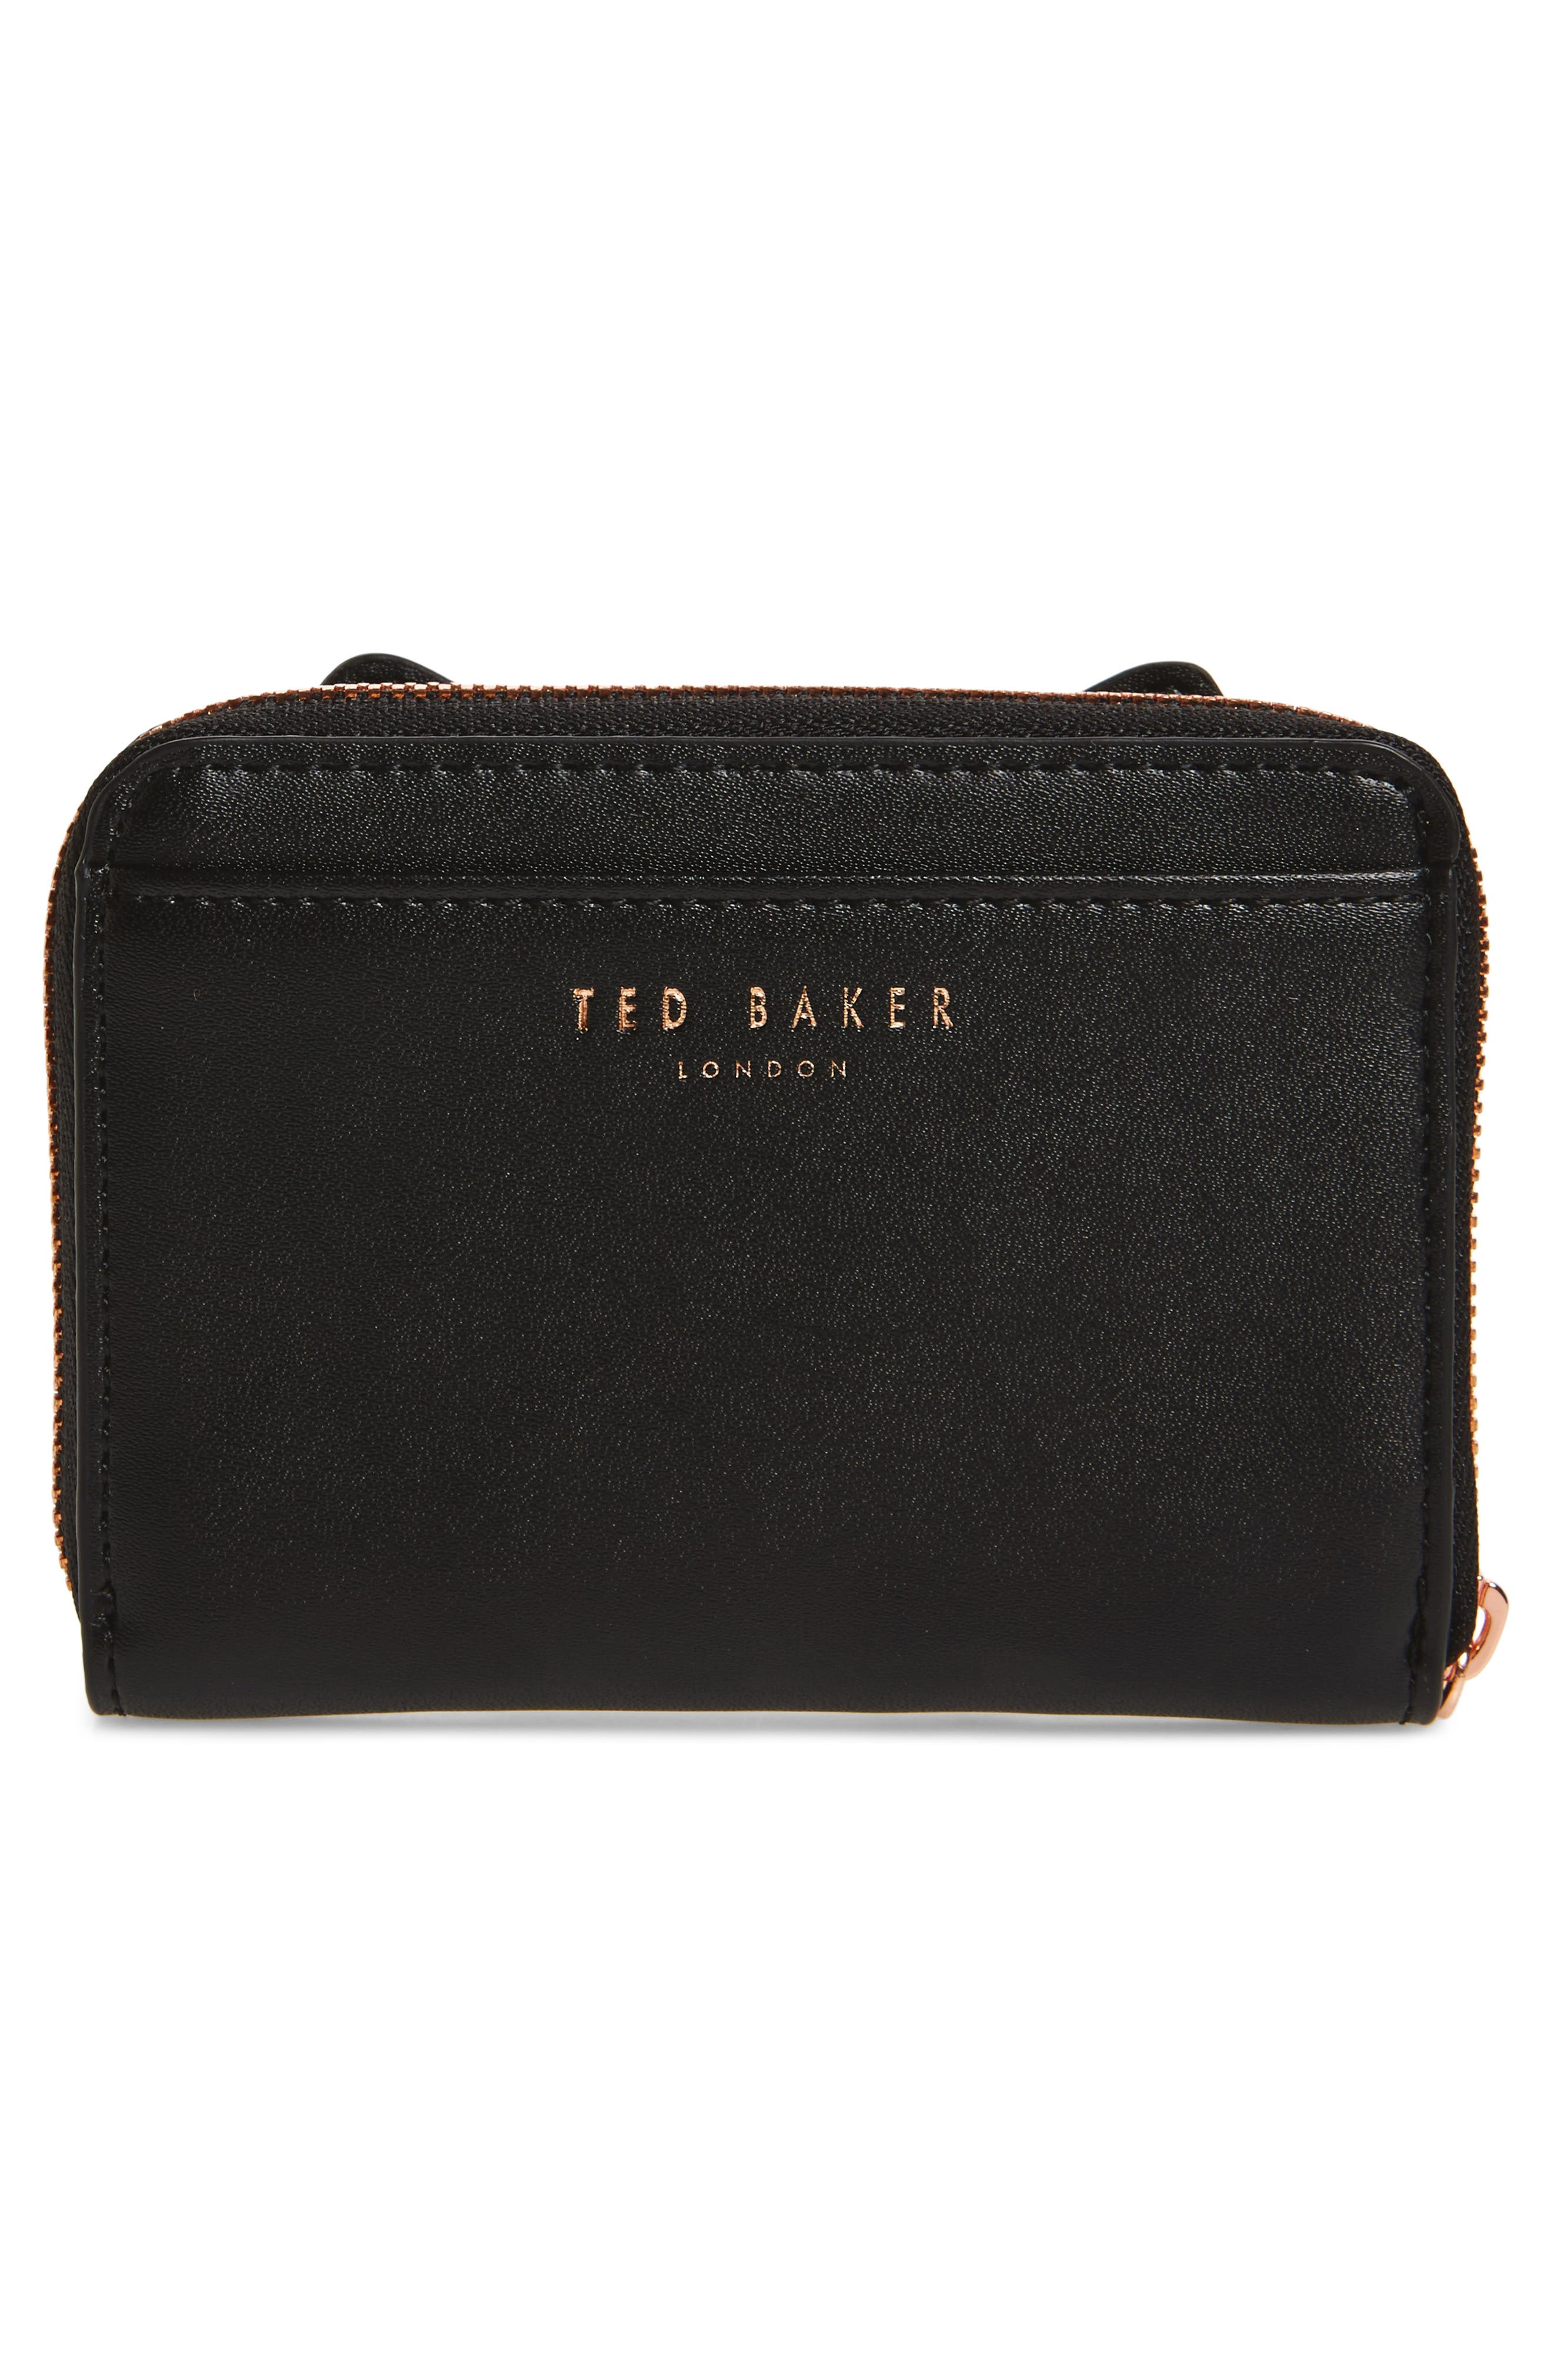 Zip Around Leather Wallet,                             Alternate thumbnail 4, color,                             Black